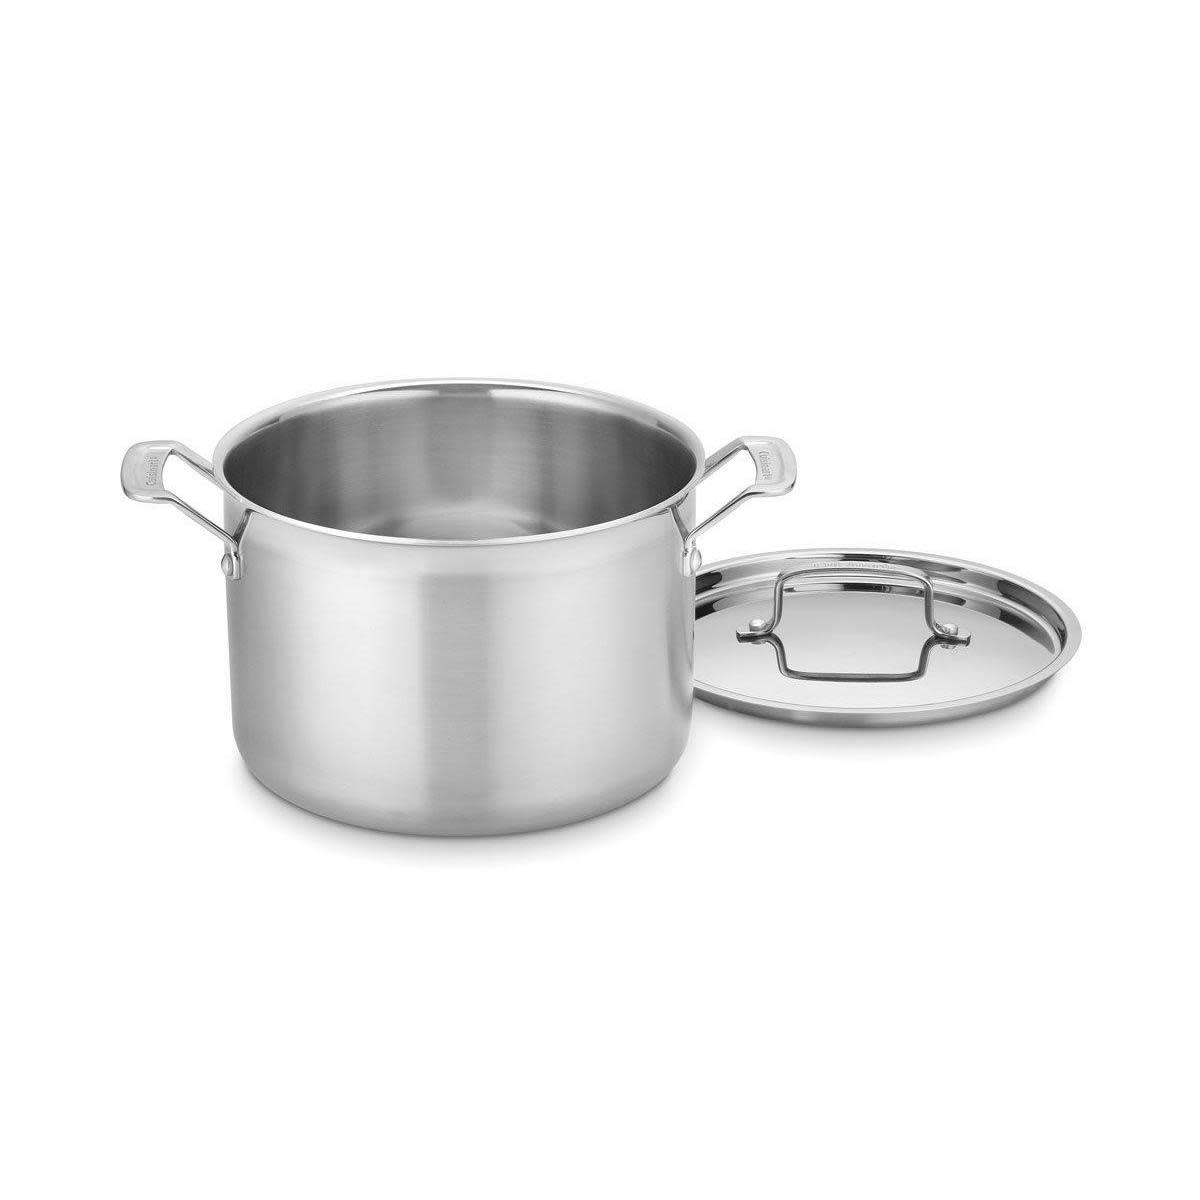 Cuisinart Cookware Multi-clad Pro Stainless Stockpot 8qt W/ Cover